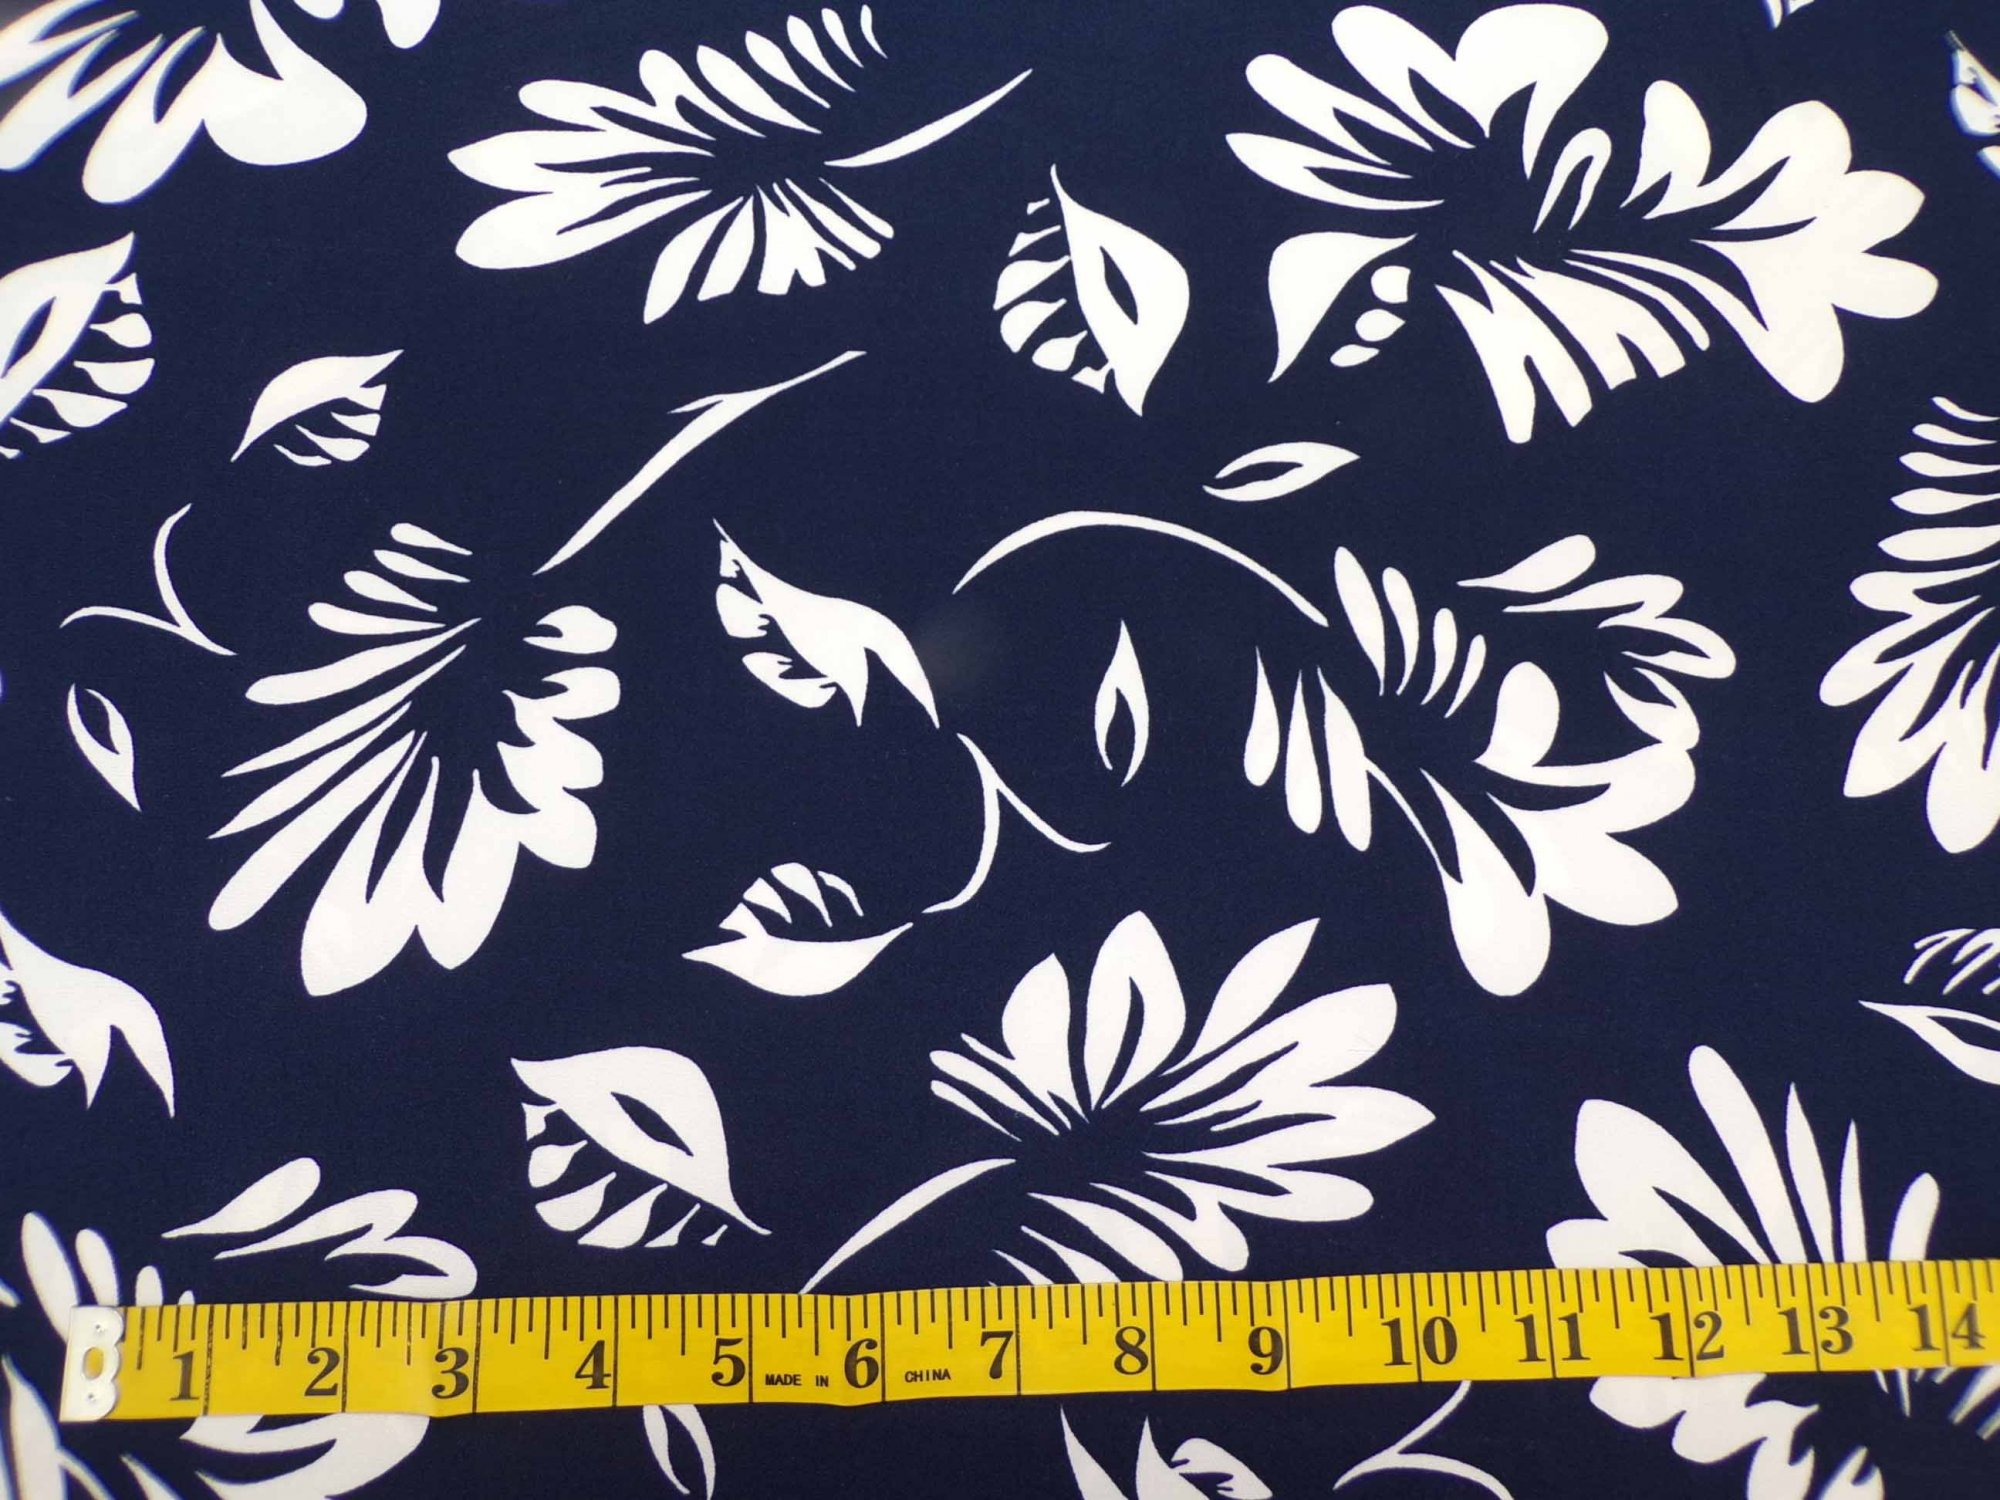 ITY Jersey - Navy with Raw White Leaves